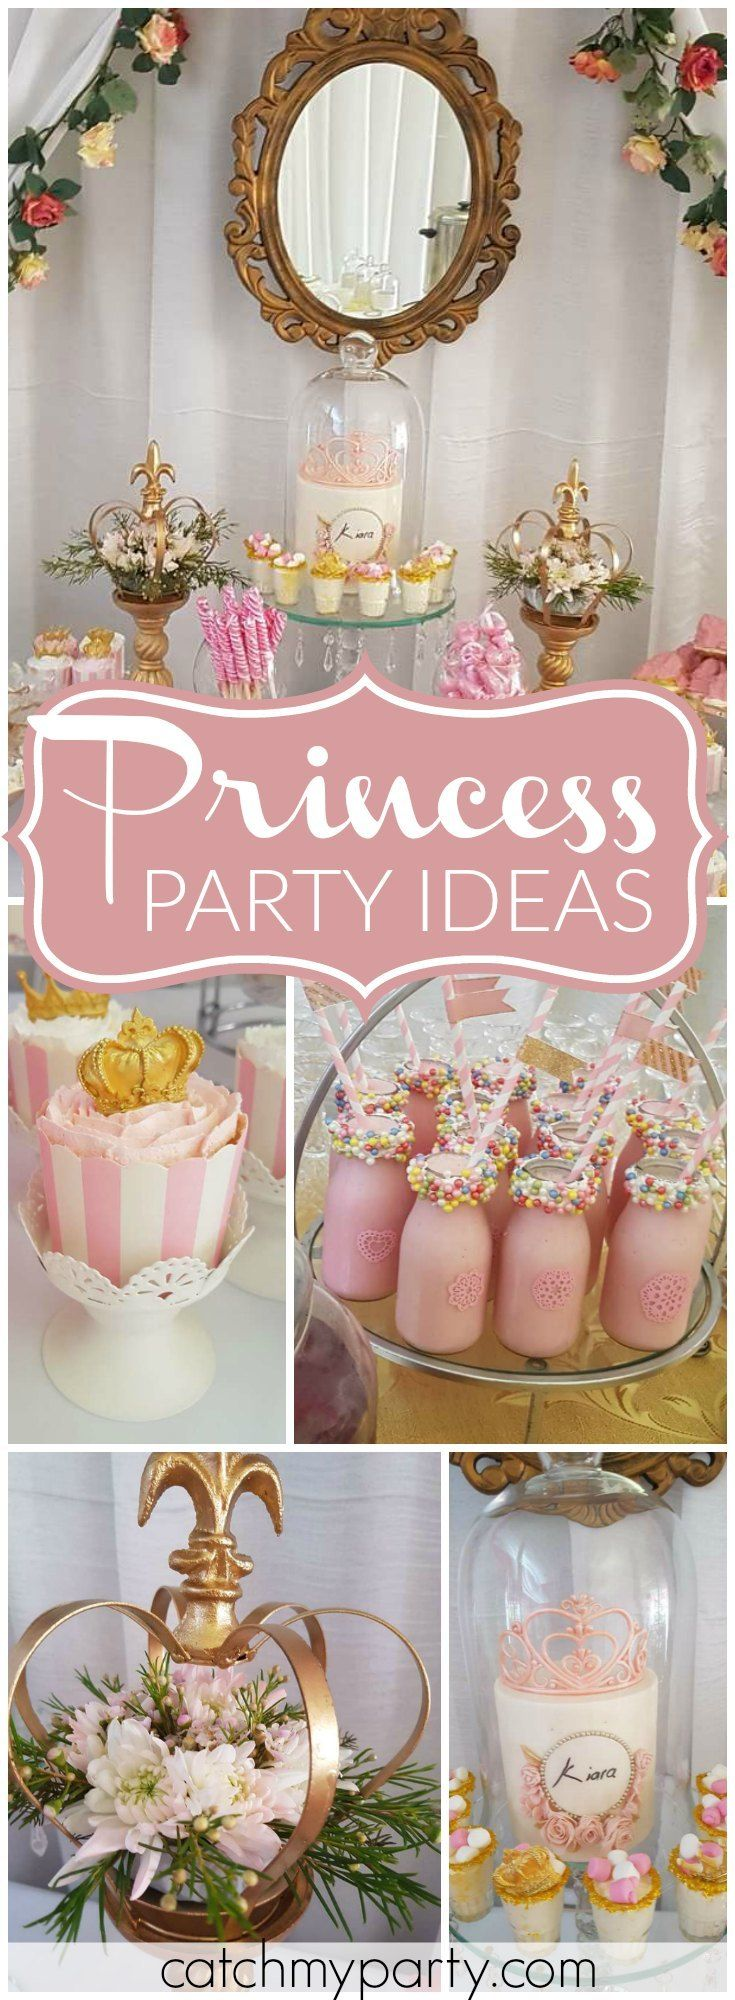 Wow! What a gorgeous pink and gold princess girl birthday party! See more party ideas at Catchmyparty.com!